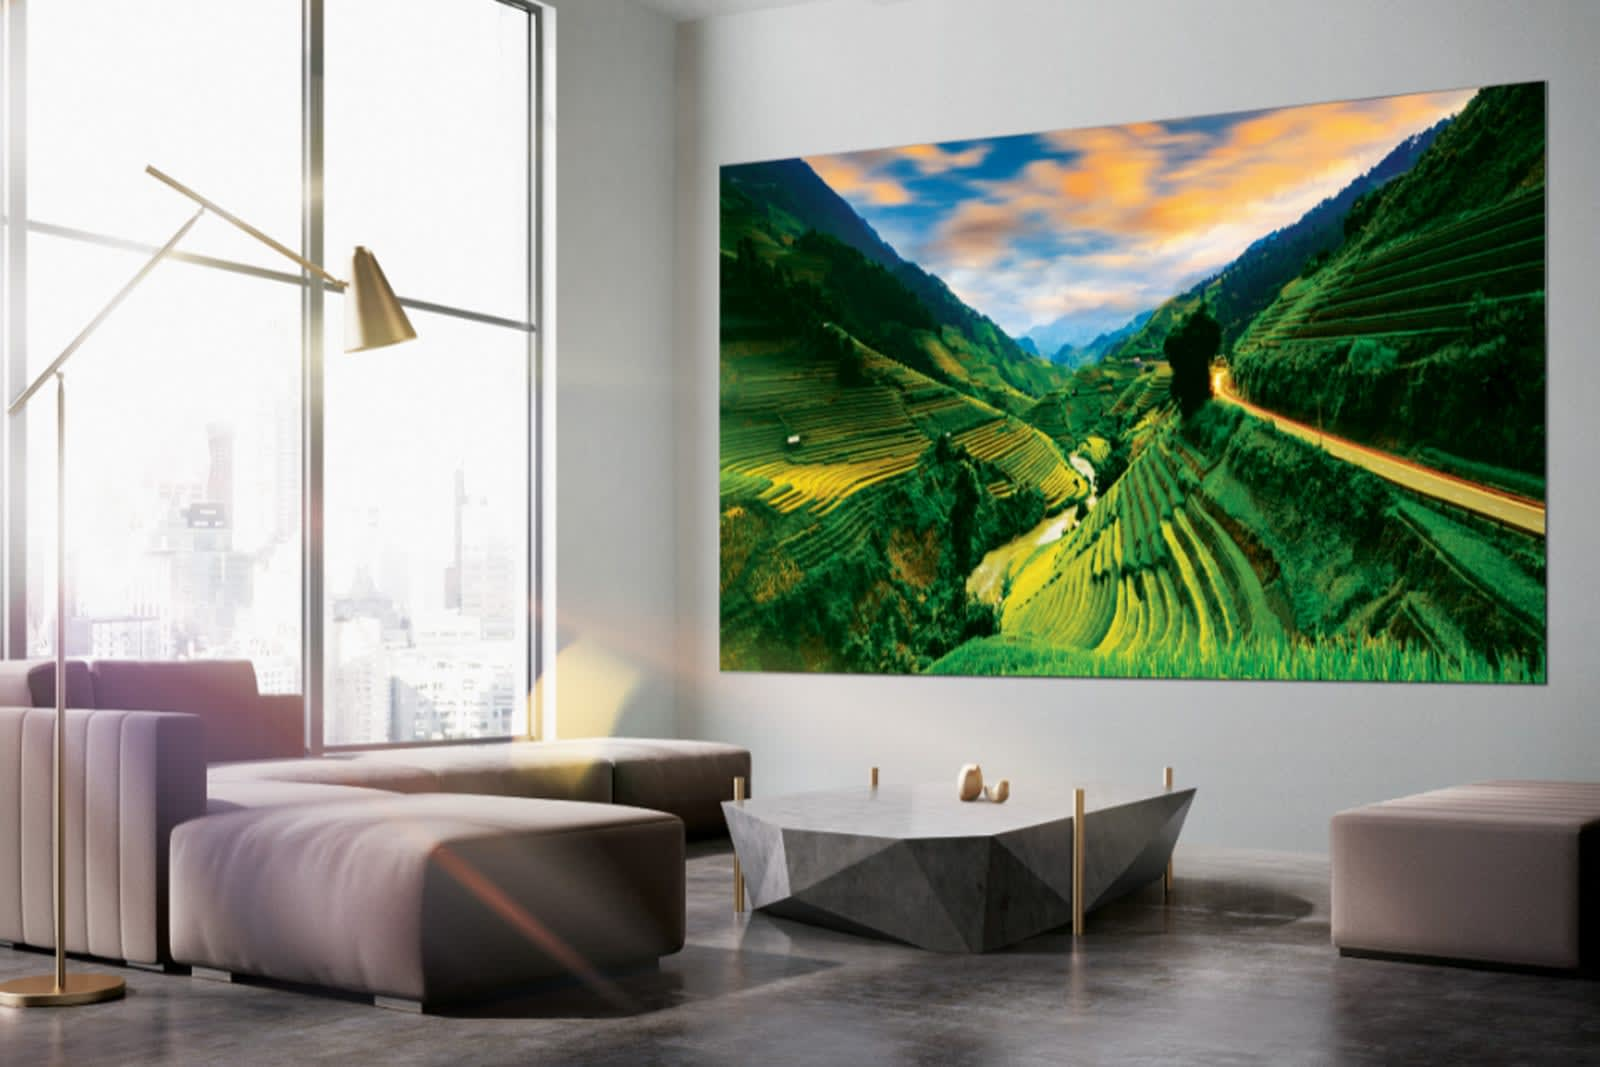 Samsung's giant 'Wall' TV now comes in four more sizes